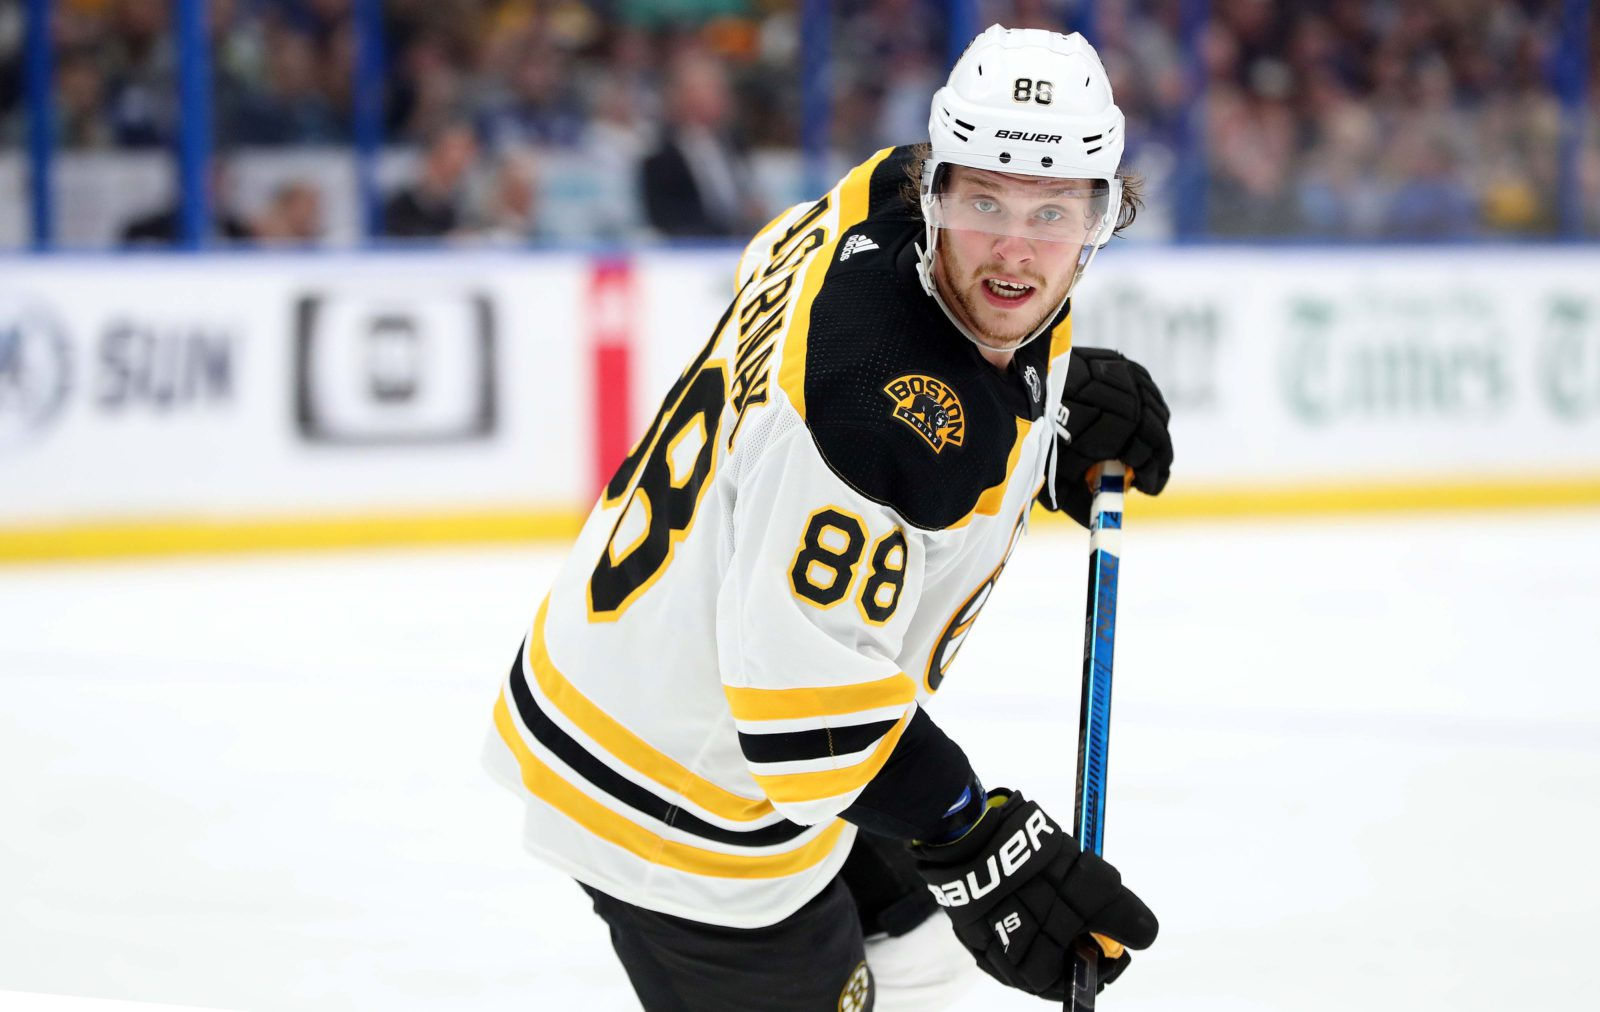 David Pastrnak uses Bauer hockey equipment